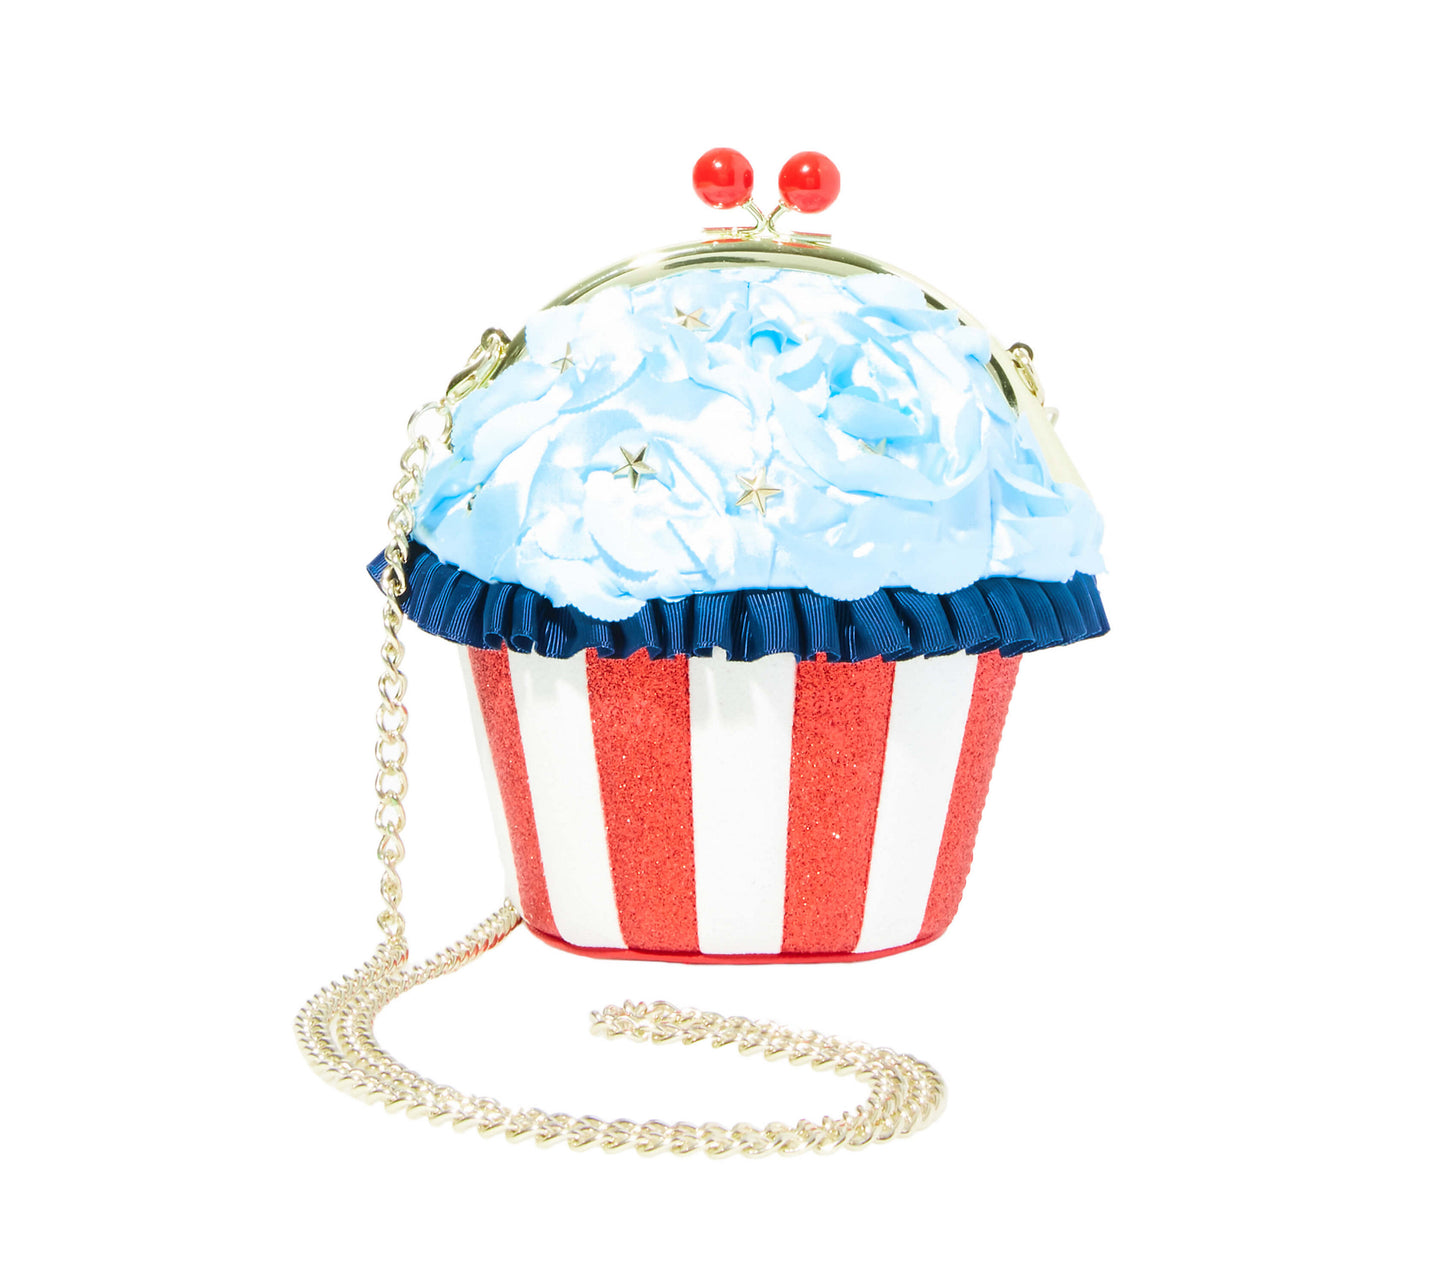 KITSCH SUMMER TREATS SNOWCONE CROSSBODY MULTI - HANDBAGS - Betsey Johnson